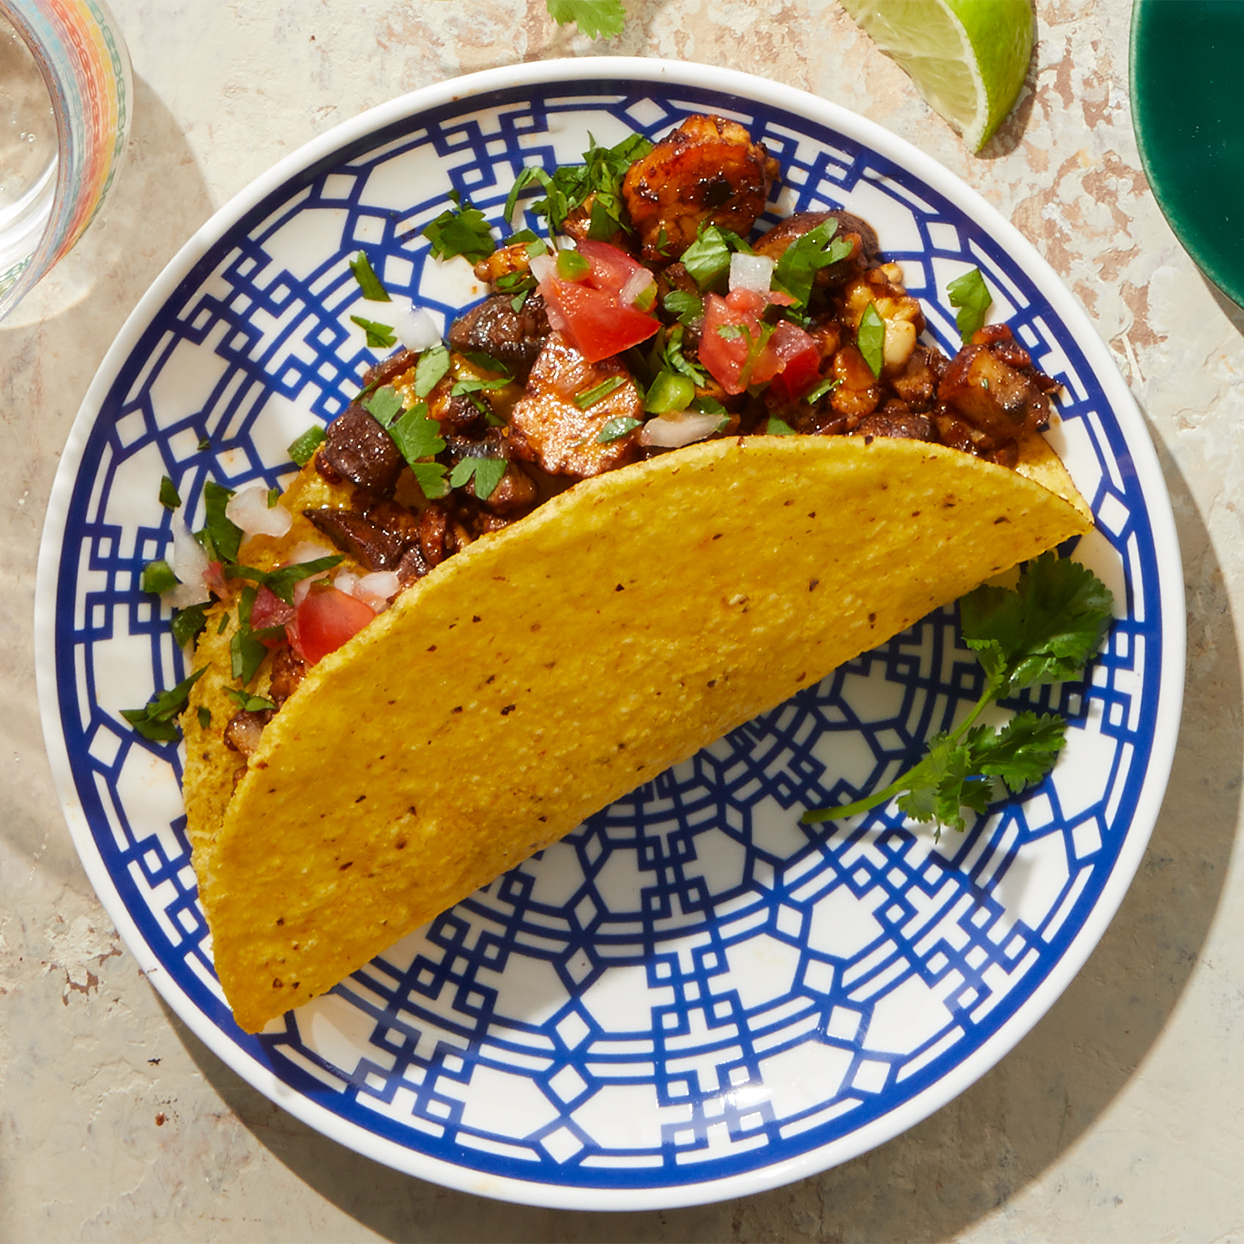 Tempeh is a vegetarian protein that crumbles easily; here it stands in for ground meat in this tempeh taco recipe. Source: Diabetic Living Magazine, Summer 2020